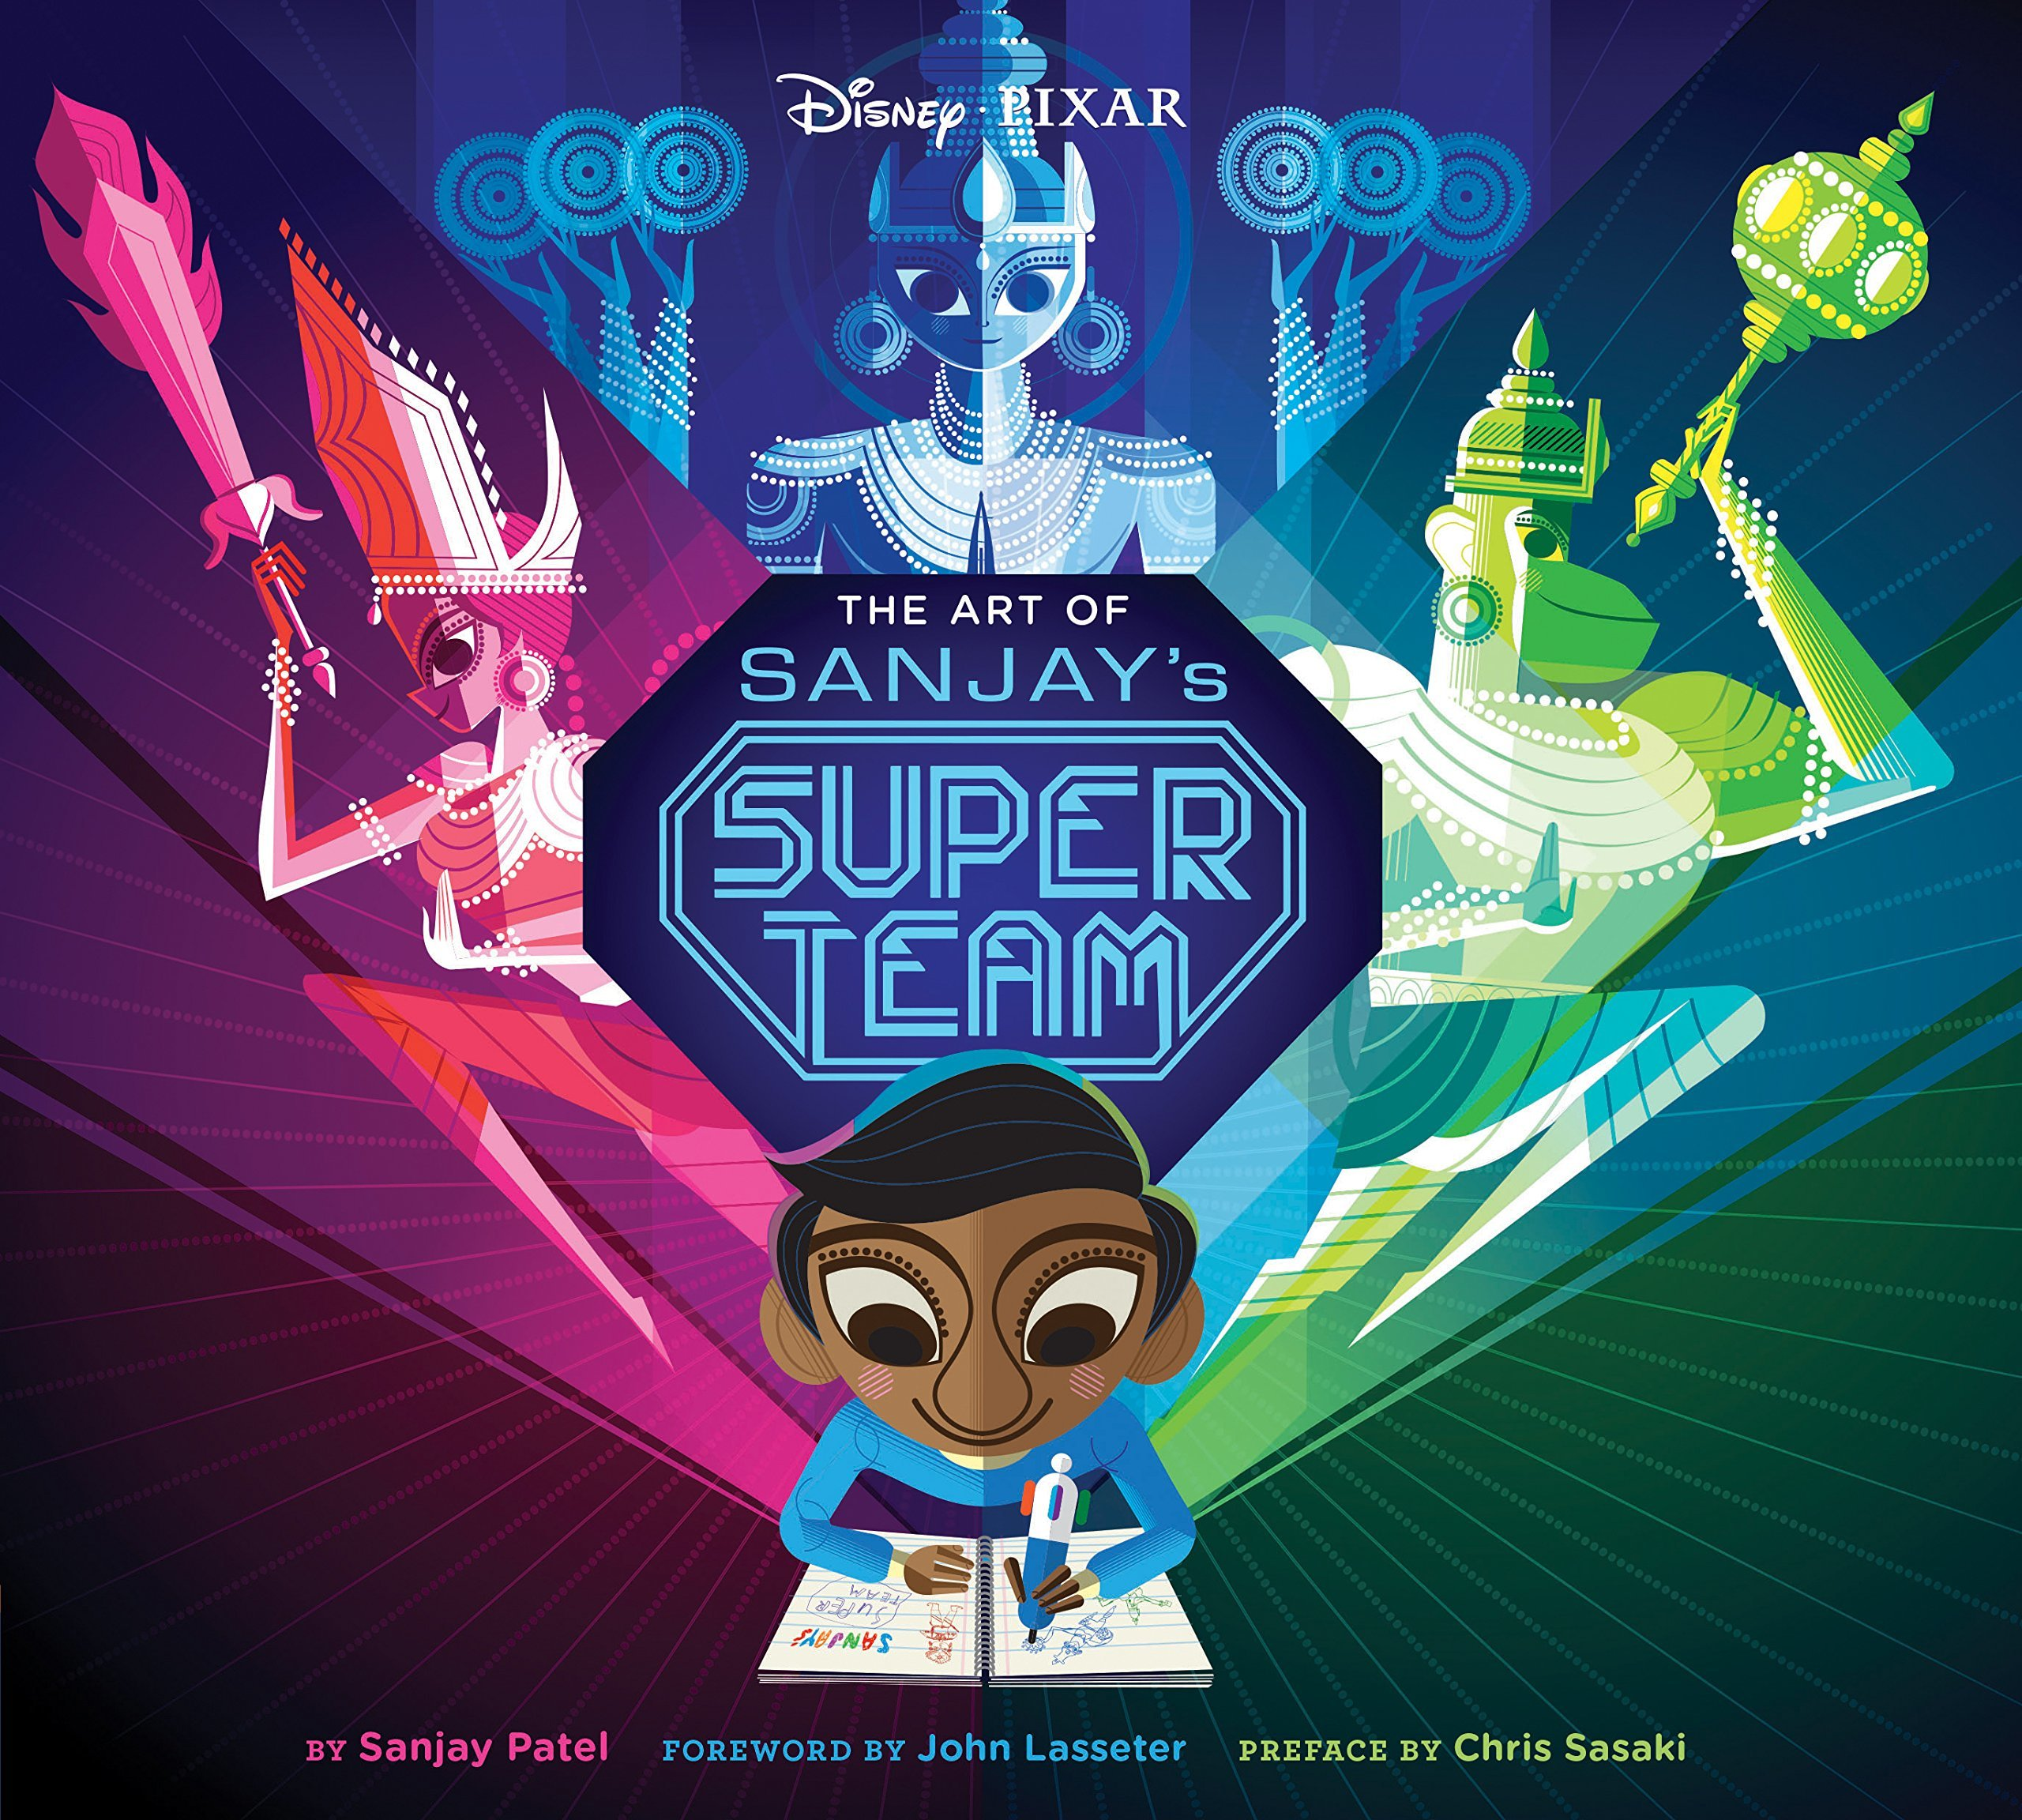 The Art of Sanjay's Super Team